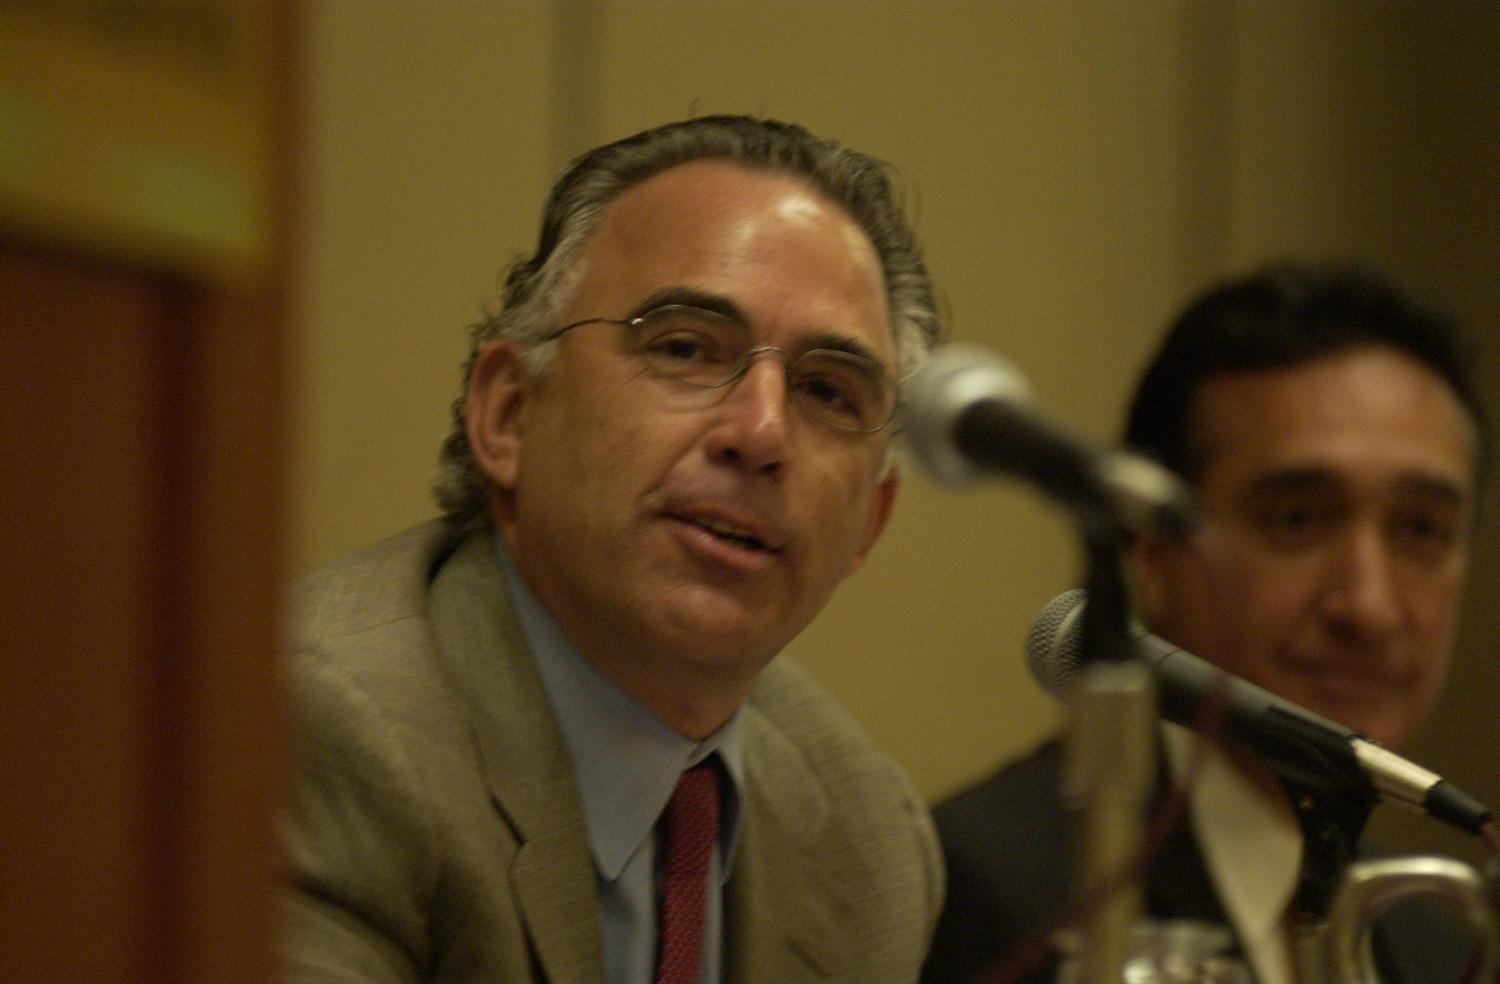 [Unidentified guest at TDNA conference], Photograph of an unidentified guest speaker attending the 2004 Texas Daily News Association annual conference held in Corpus Christi. The guest is seated at the table with other speakers with microphones placed in front of them.,